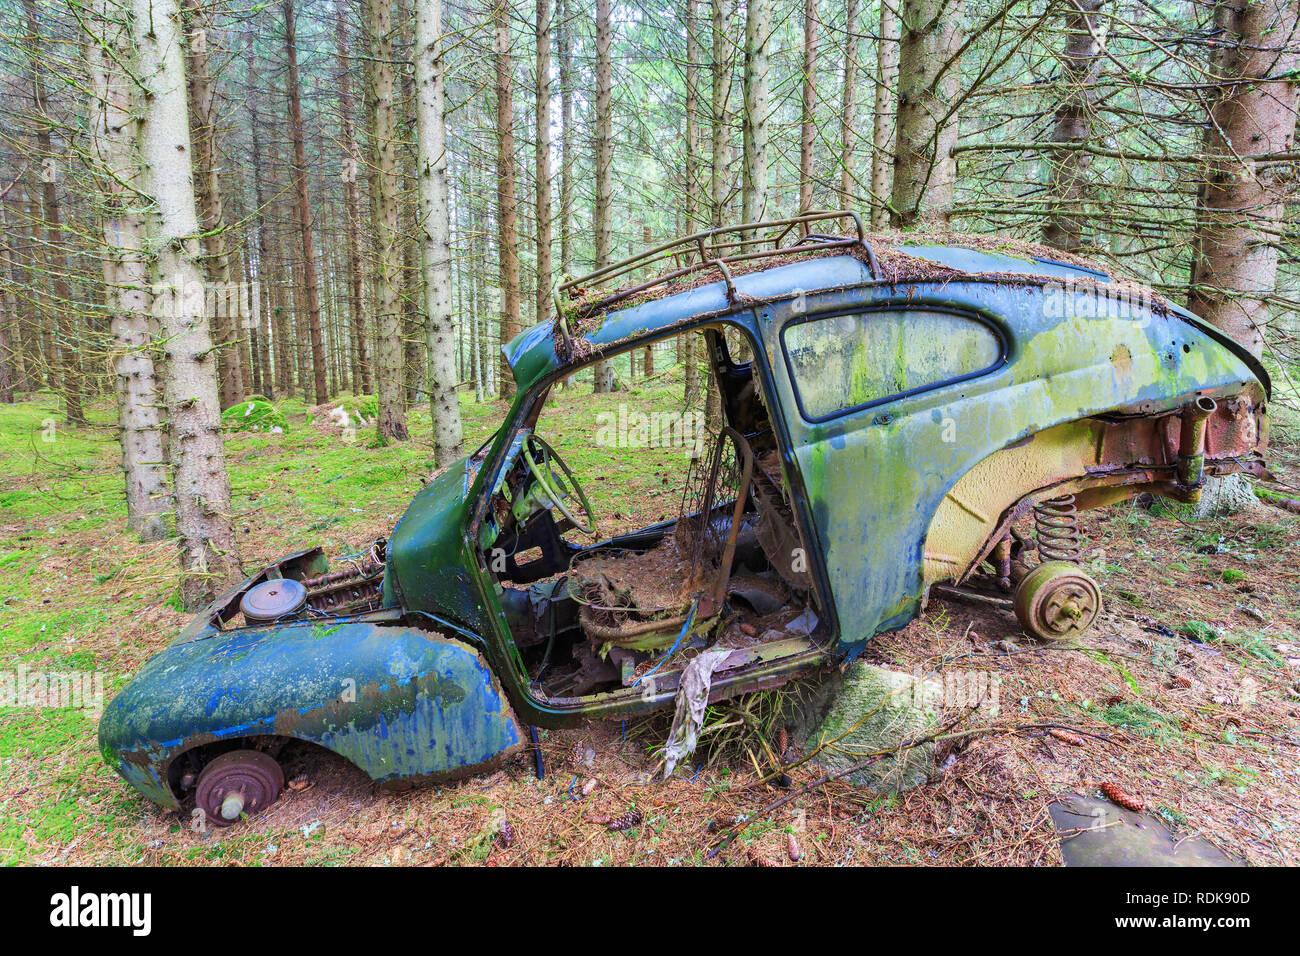 Old car wreck standing in the forest - Stock Image